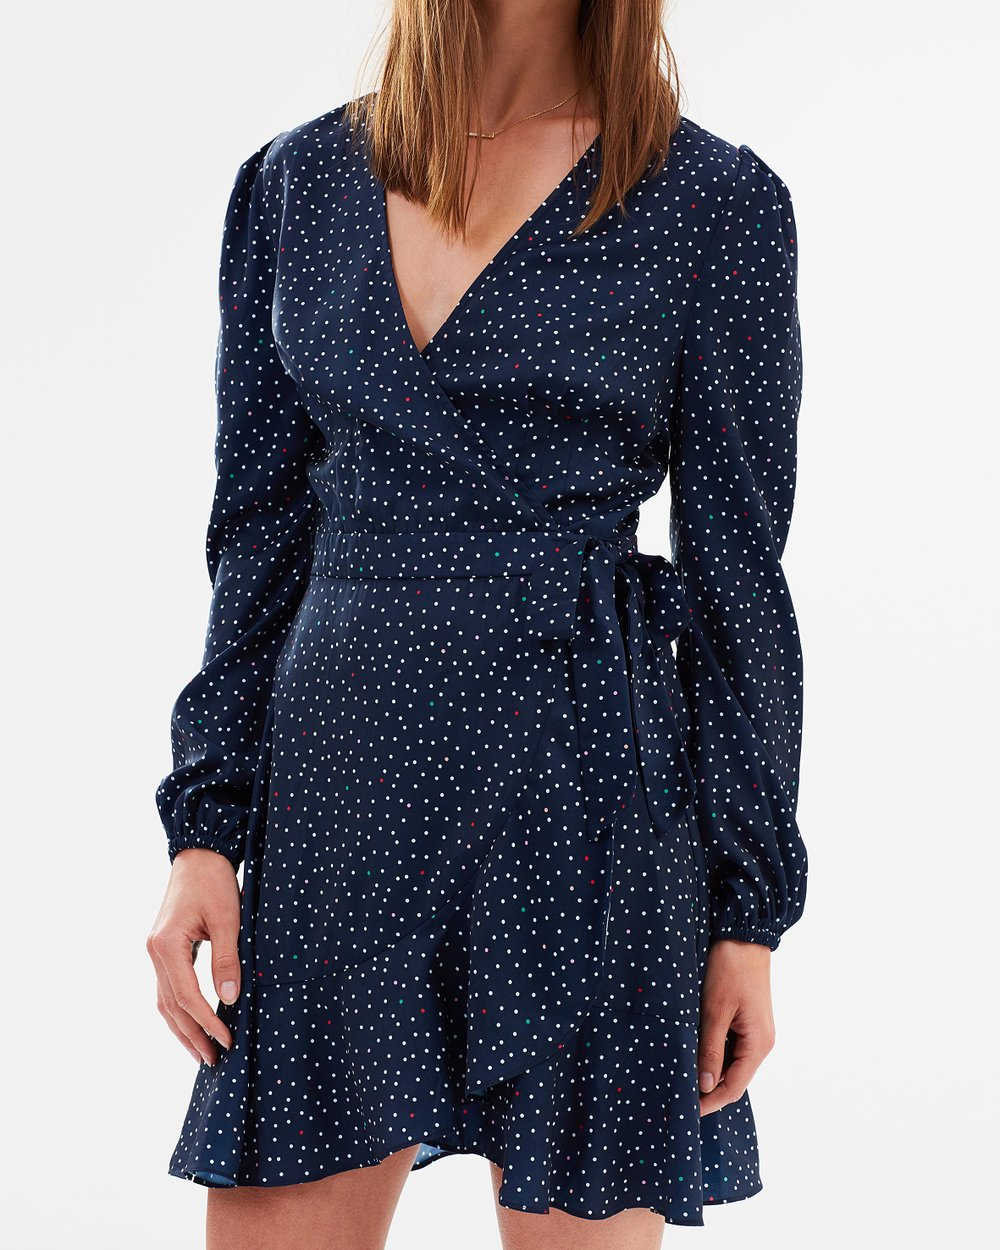 def852d331d Rooftop Polka Dot Long Sleeve Dress by The Fifth Label Online